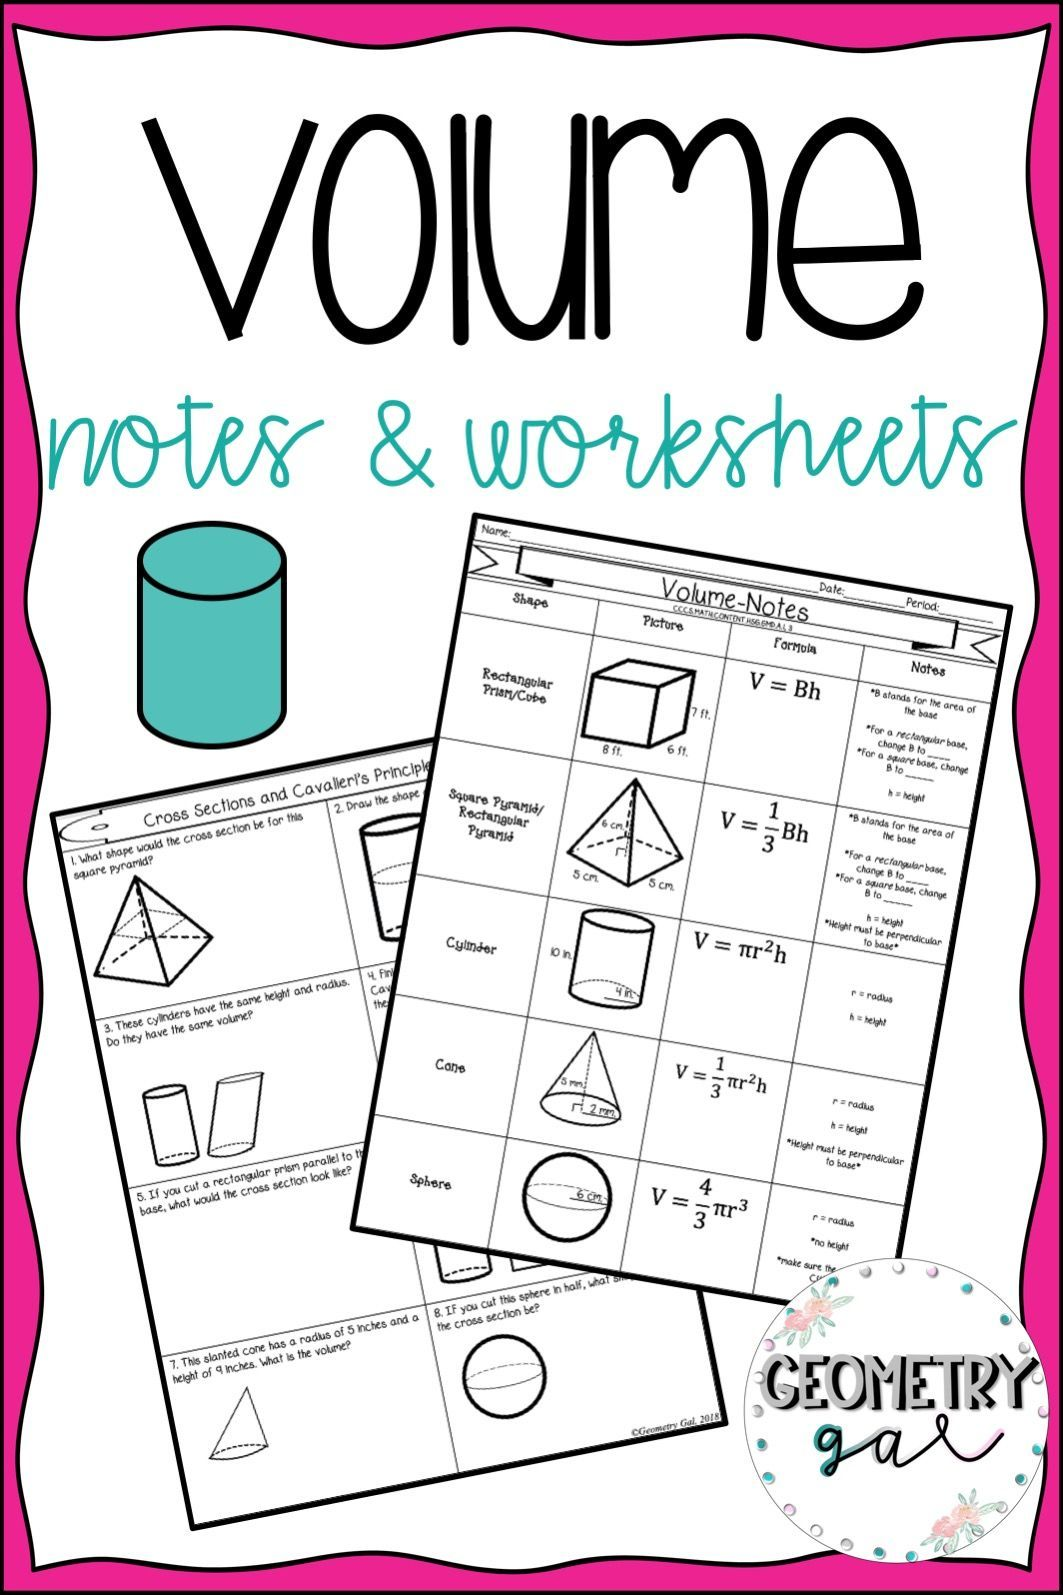 Volume Of Cylinders Cones And Spheres Practice Worksheet